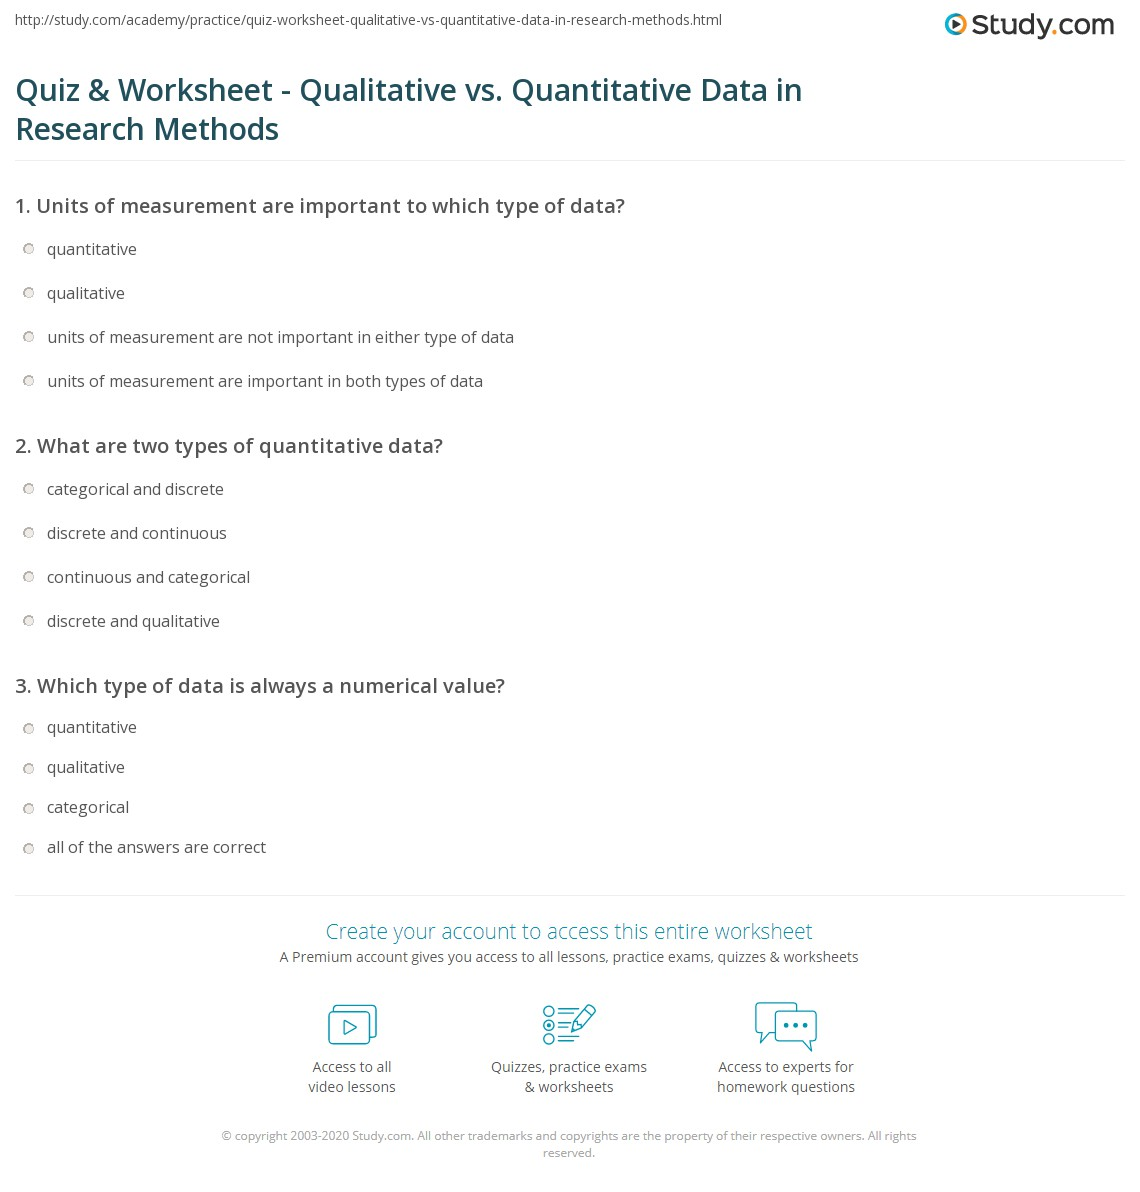 Quiz amp Worksheet Qualitative Vs Quantitative Data In Research Quiz Worksheet Qualitative Vs Quantitative Data In Research Methods Quiz Worksheet Qualitative Vs Quantitative Data In Research Methods